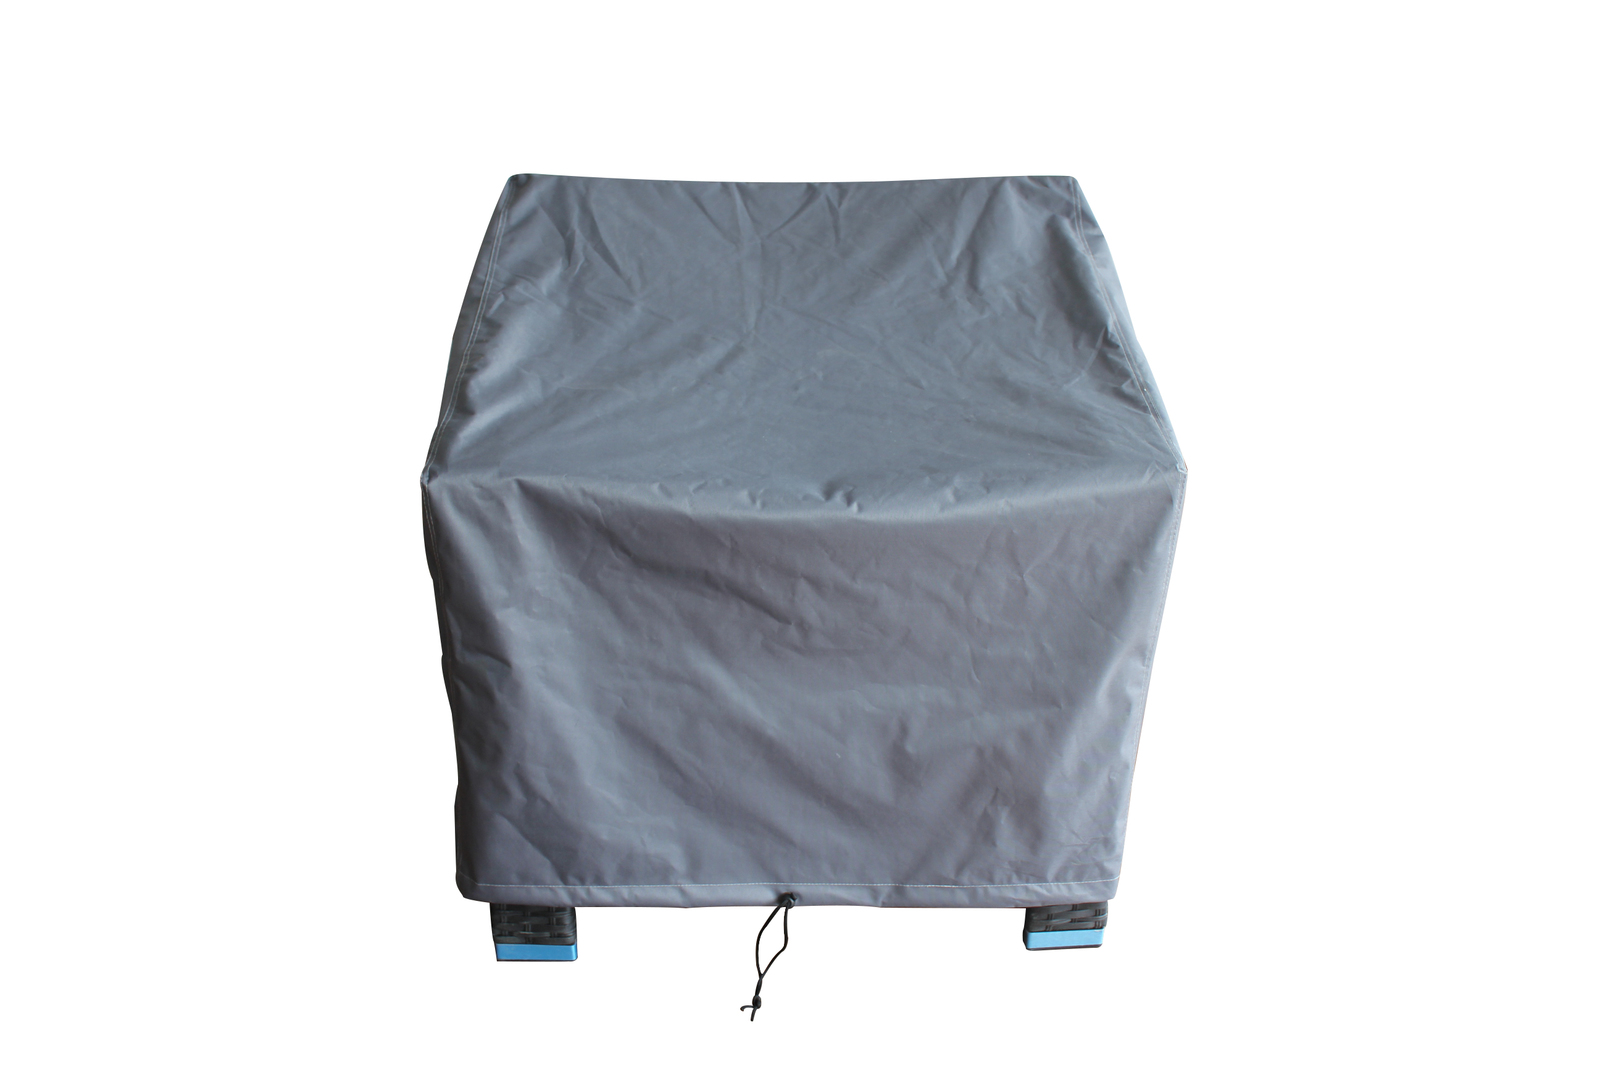 Outdoor Heavy Duty Single Lounge Chair Furniture Cover - 80(L) x 98(W) x 74cm(H) image